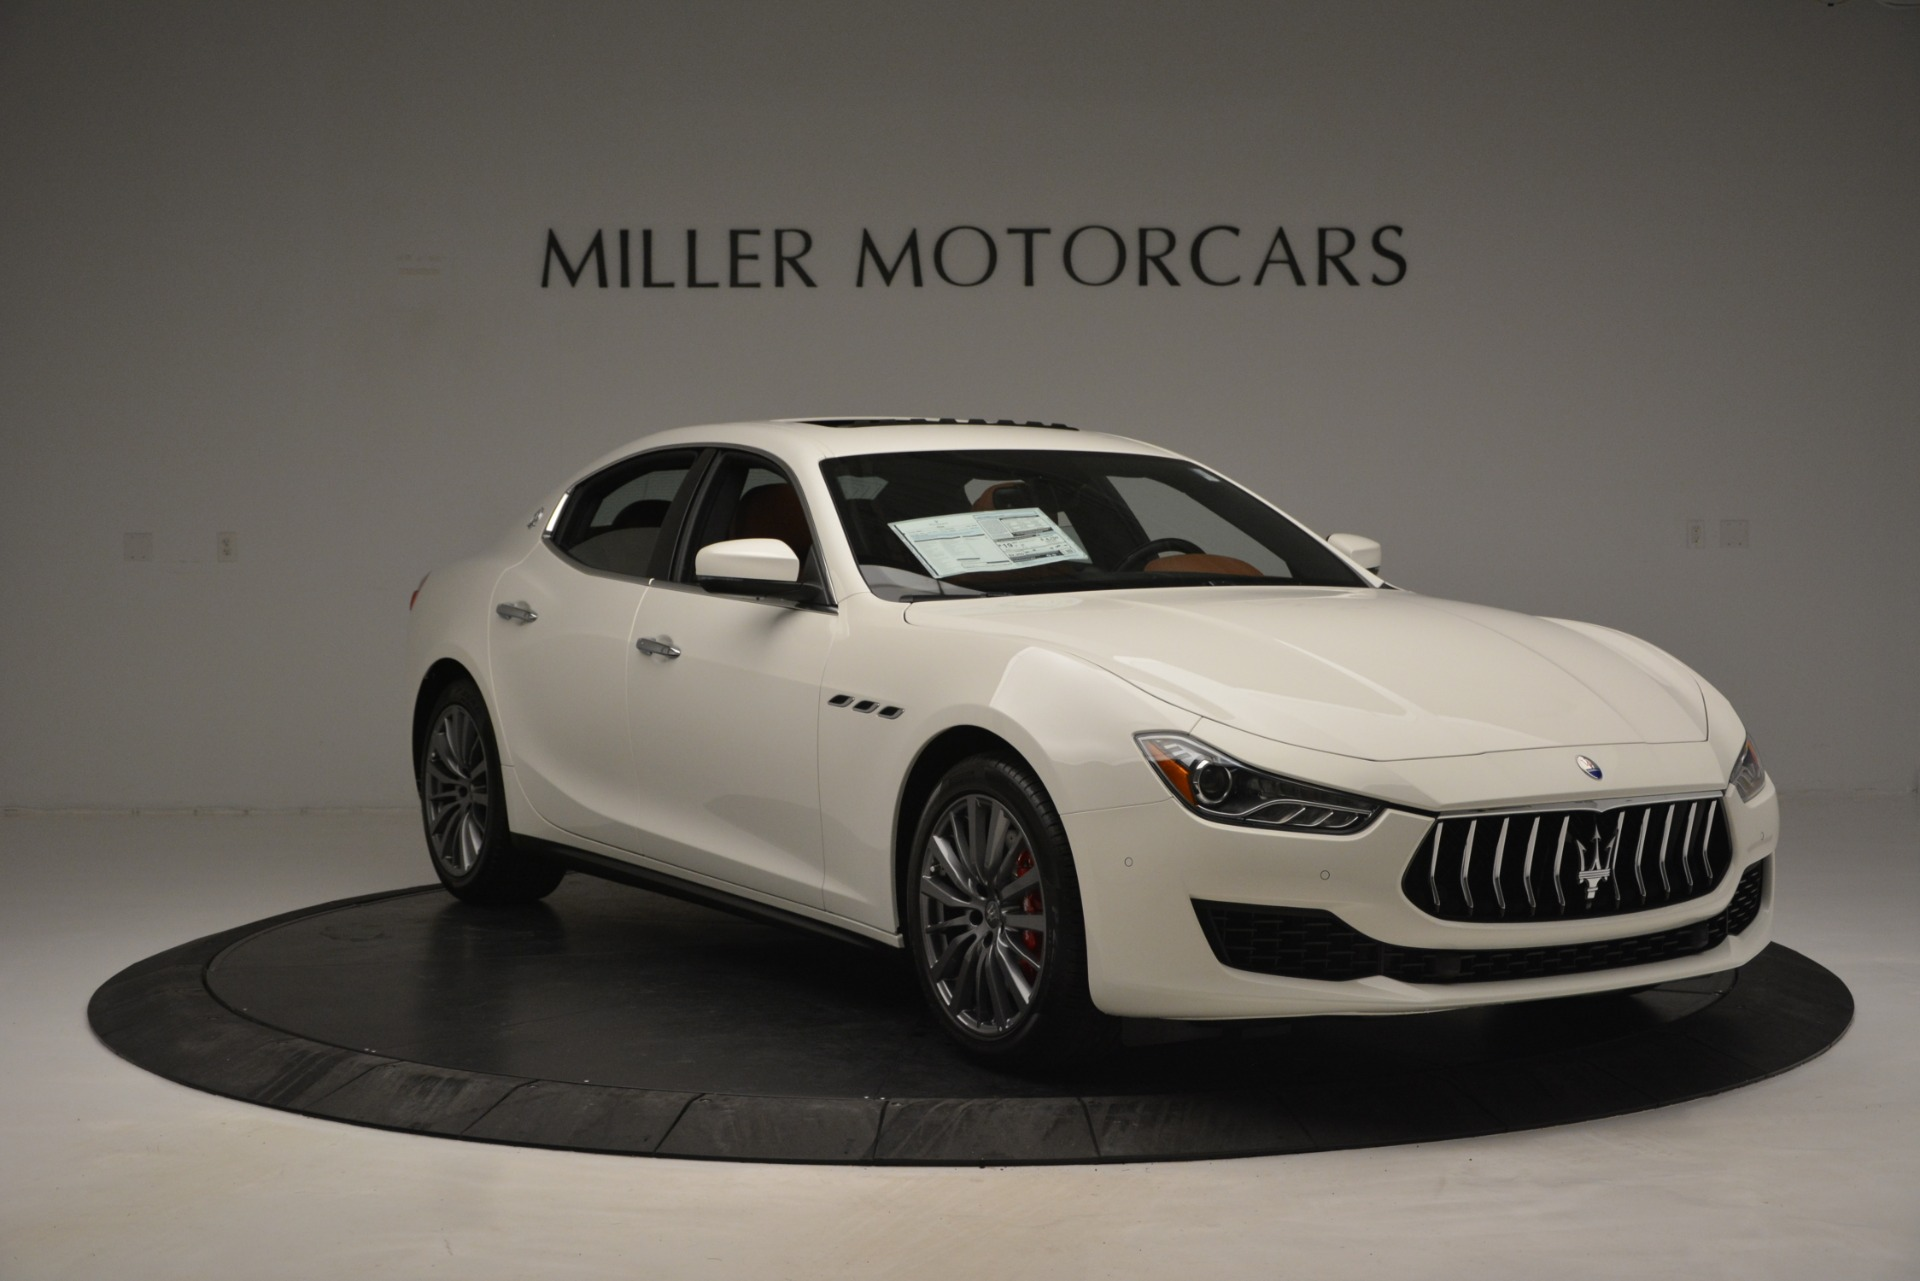 New 2019 Maserati Ghibli S Q4 For Sale In Greenwich, CT. Alfa Romeo of Greenwich, M2245 2795_p14